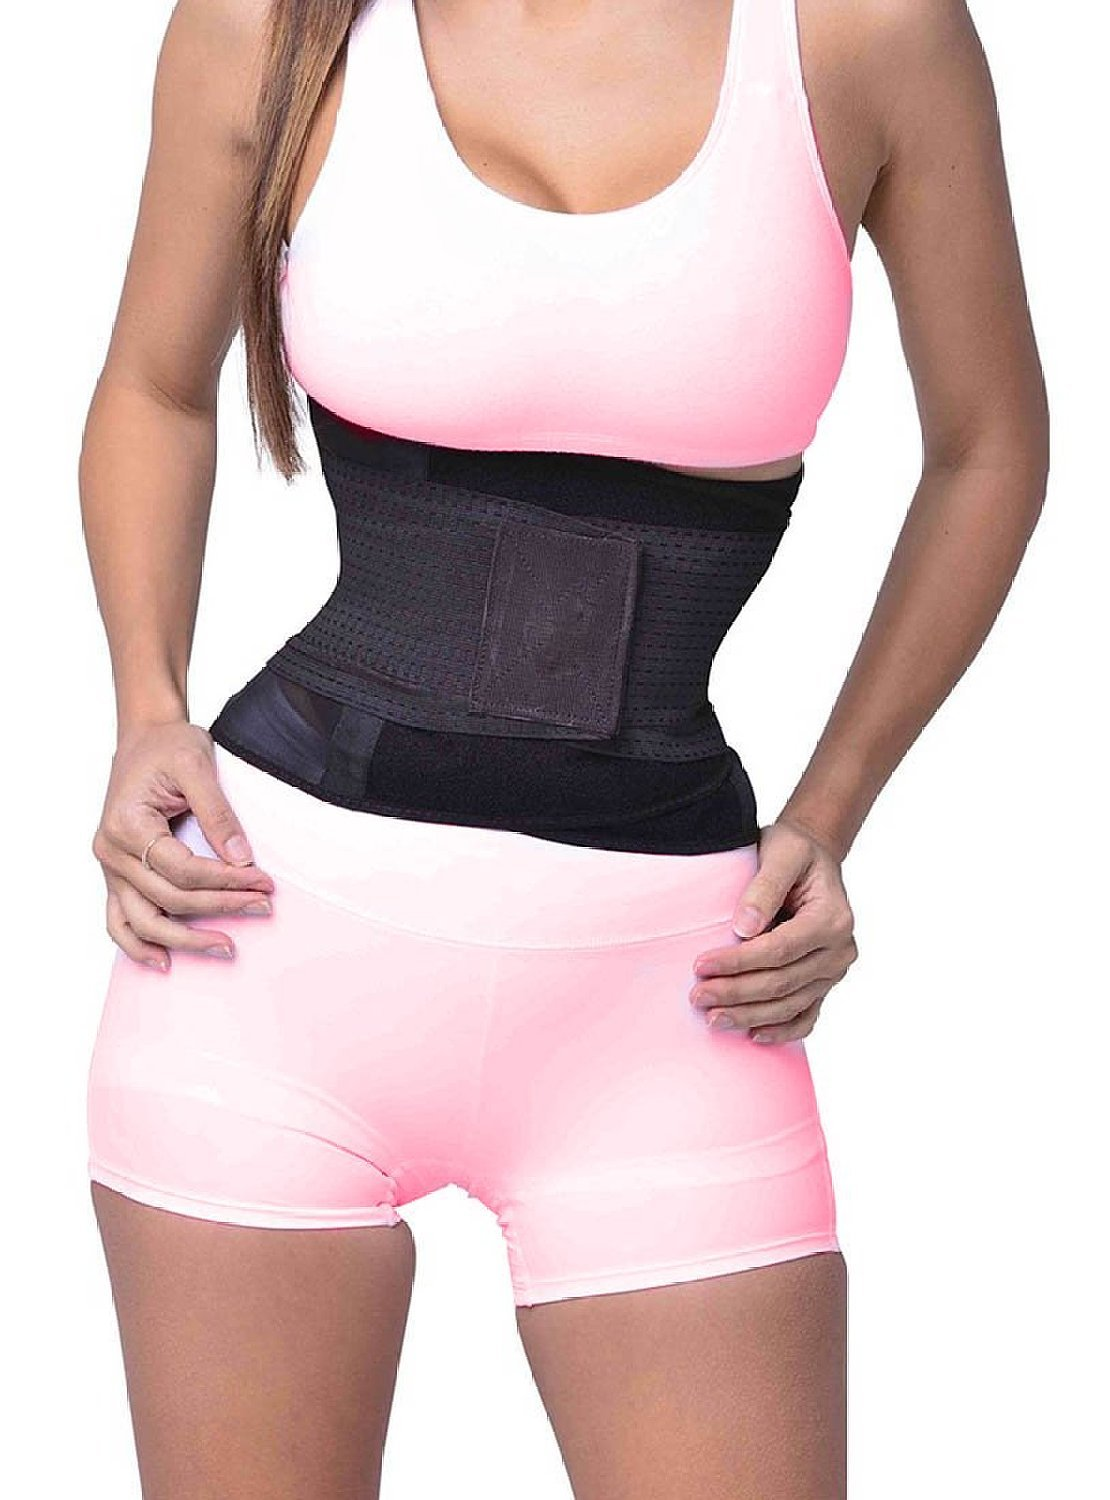 SAYFUT Miss Women's Waist Trainer Girdle Belt Body Shaper Belt For An Hourglass Shaper Black Medium (US Size 0-12/Waist 24-30.5inch), US Size 2-10/Waist 23.5''-30''(Tag M), Black